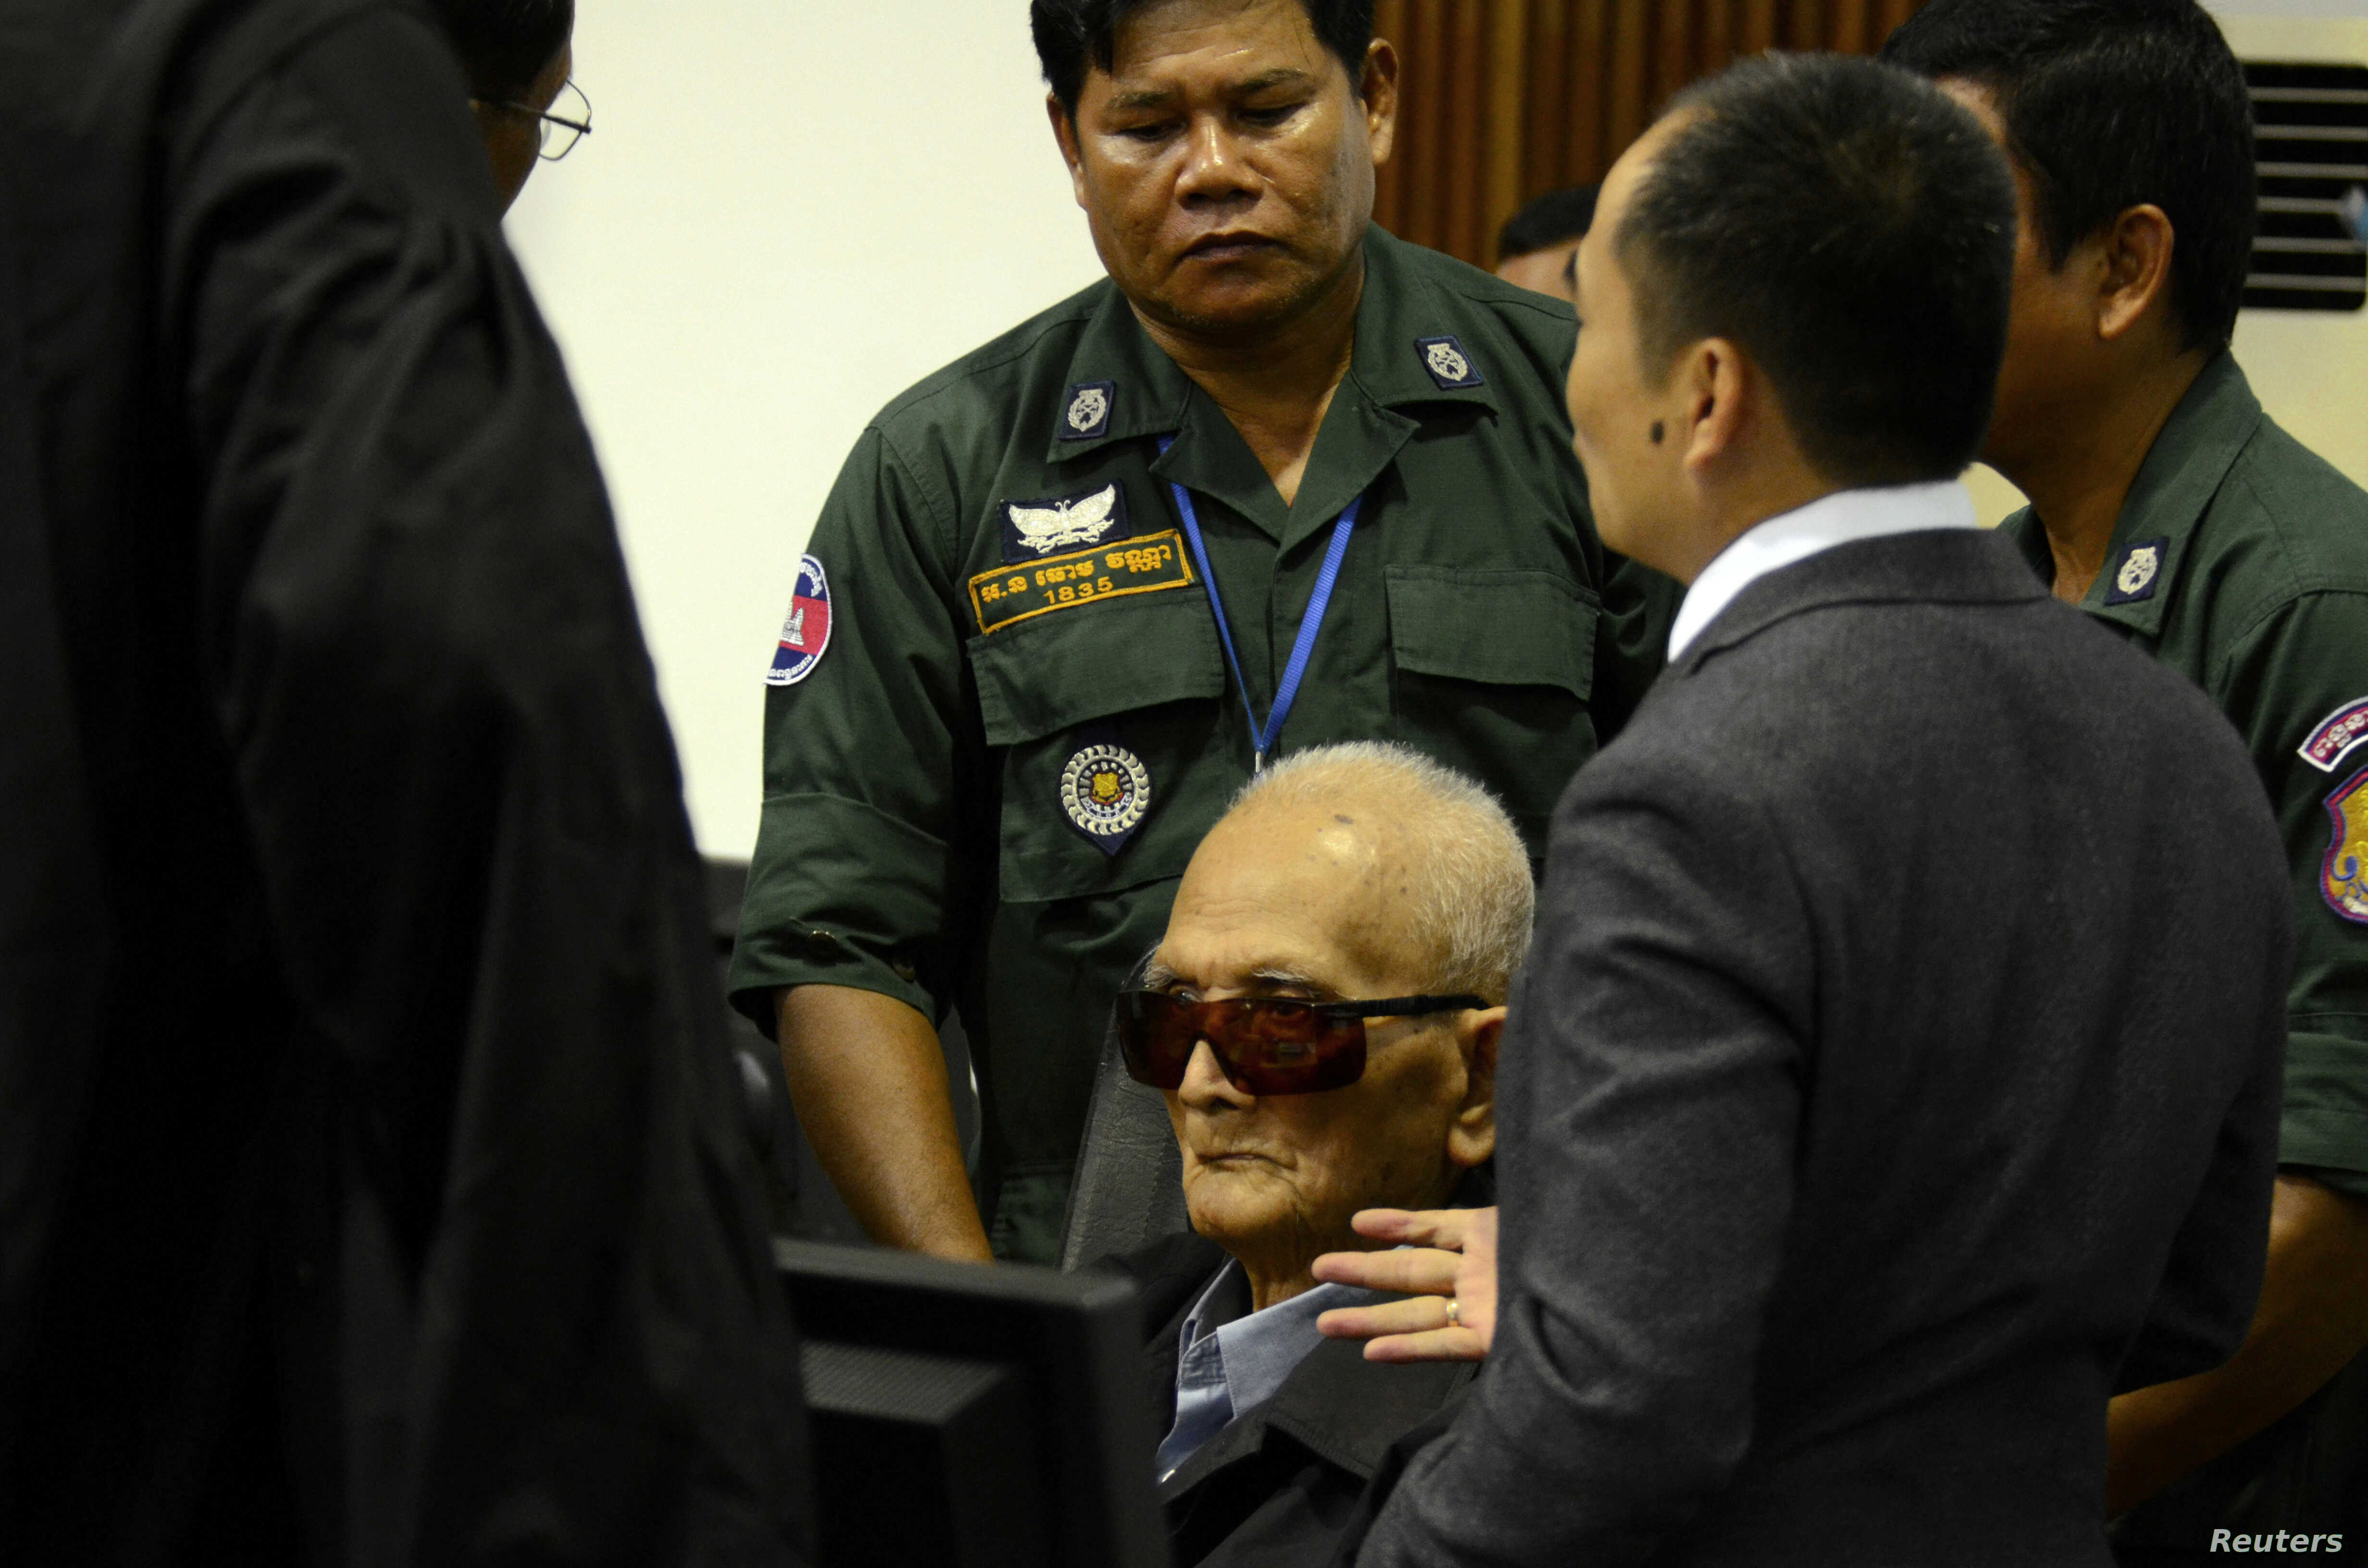 Former Khmer Rouge leader ''Brother Number Two'' Nuon Chea sits inside the courtroom of the Extraordinary Chambers in the Courts of Cambodia (ECCC) as he waits for a verdict, on the outskirts of Phnom Penh, Cambodia, Nov. 16, 2018.